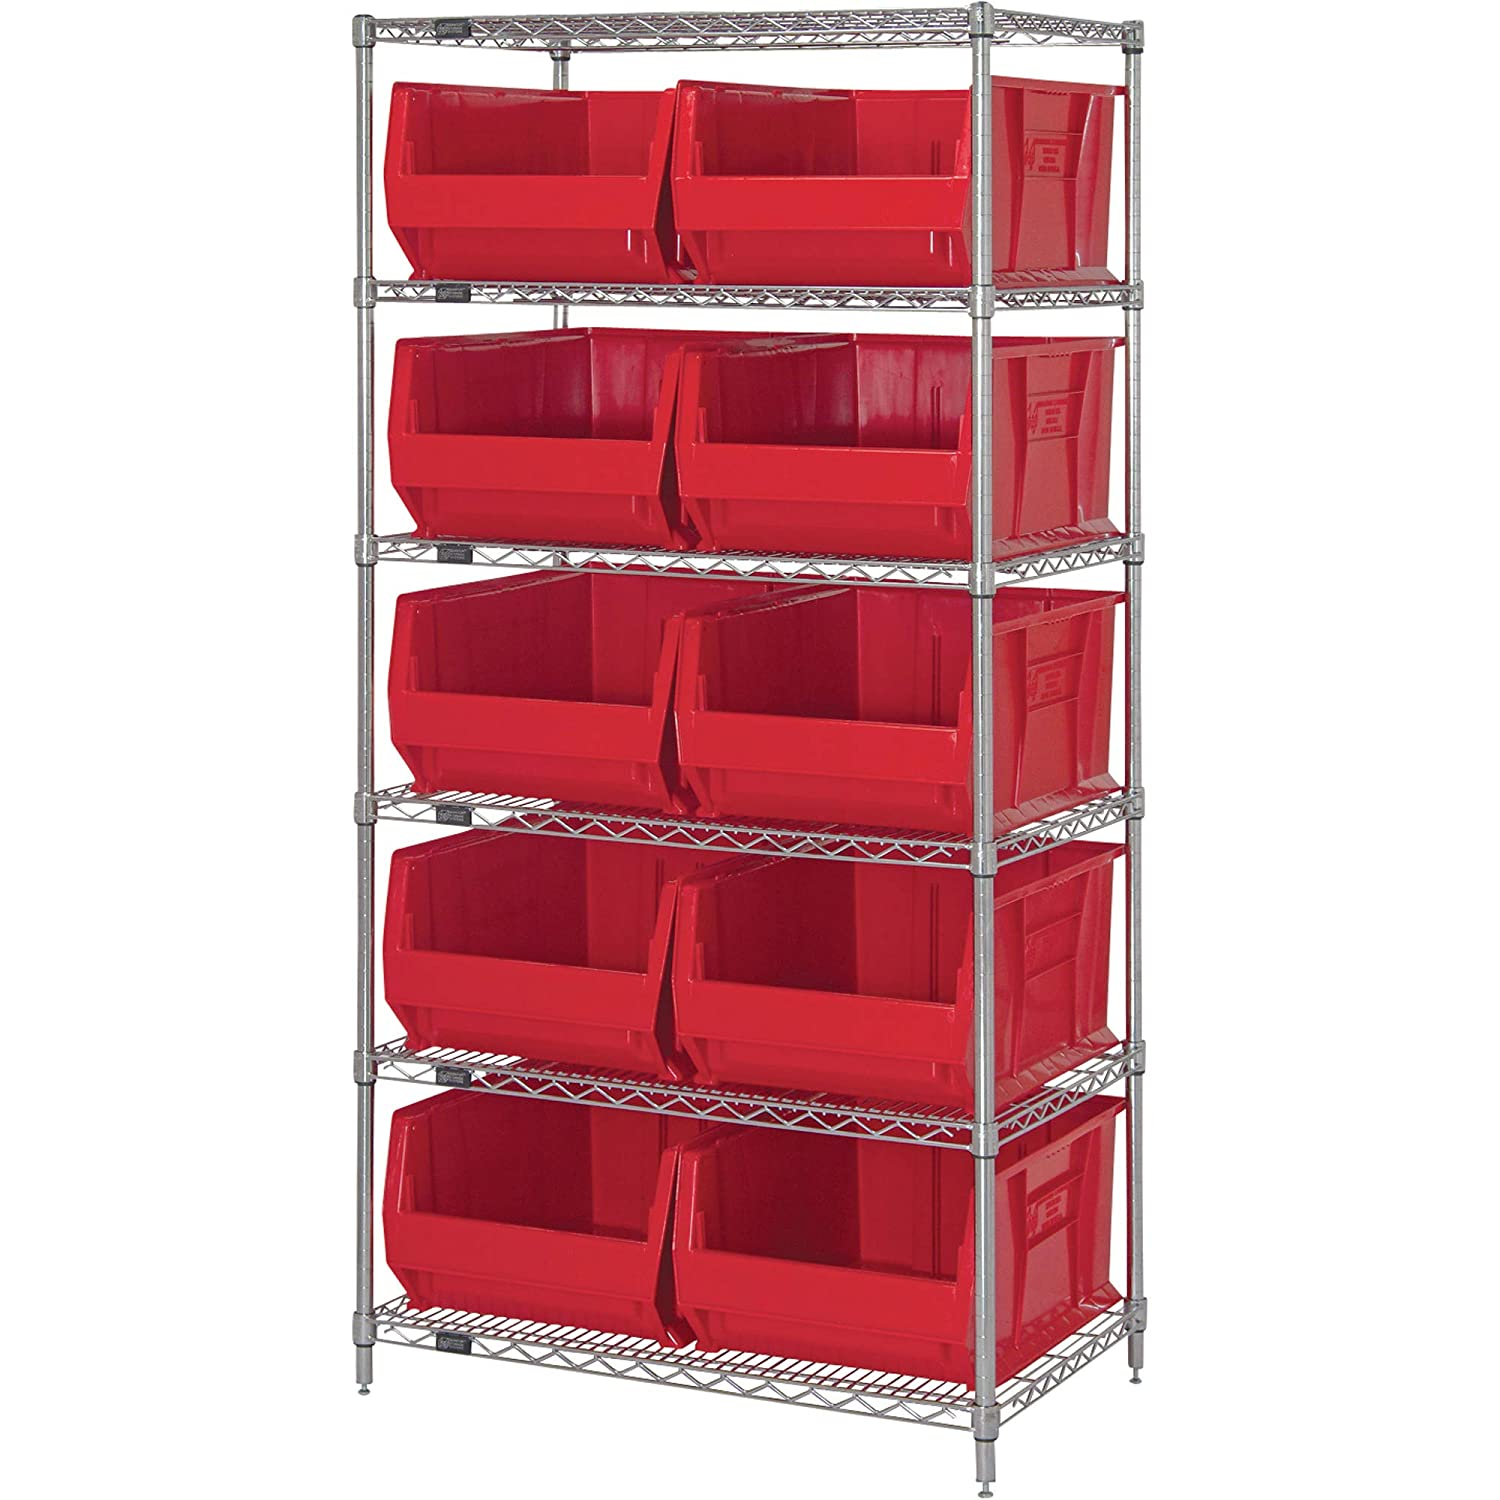 """B004HL234E Quantum Storage Systems WR6-974RD 6-Tier Complete Wire Shelving System with 10 QUS974 Red Hulk Bins, Chrome Finish, 30"""" Width x 36"""" Length x 74"""" Height 7118AbVJ7YL._SL1500_"""